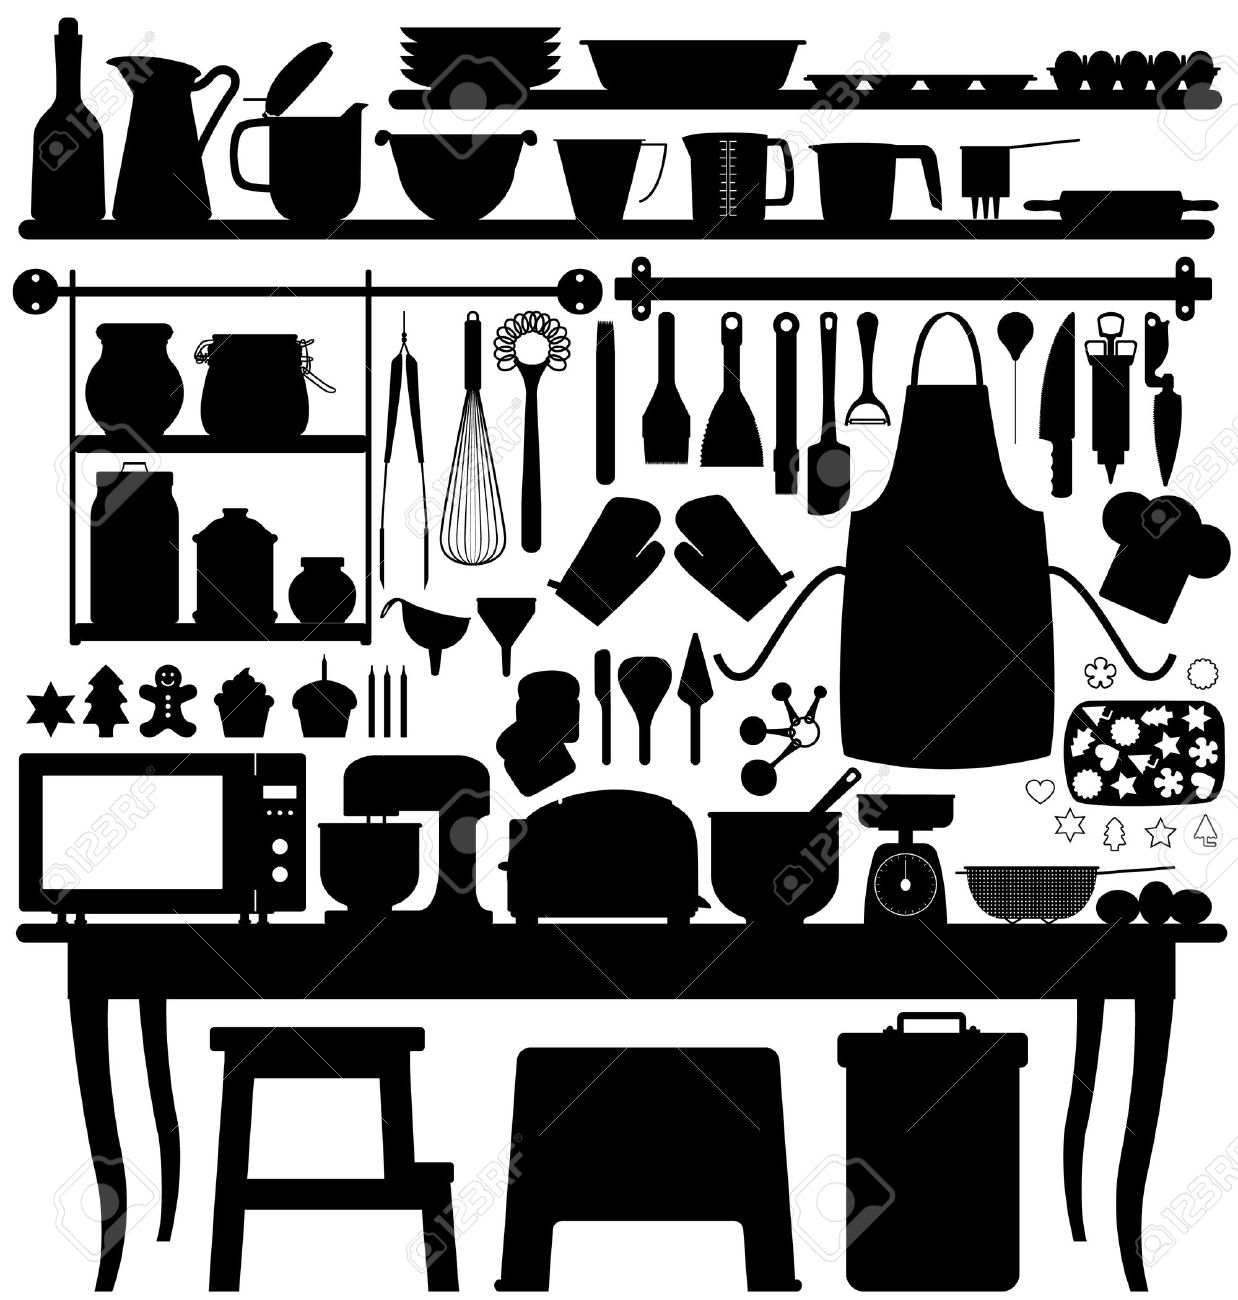 Baking Pastry Kitchen Tool Silhouette Vector Stock Vector - 7796660